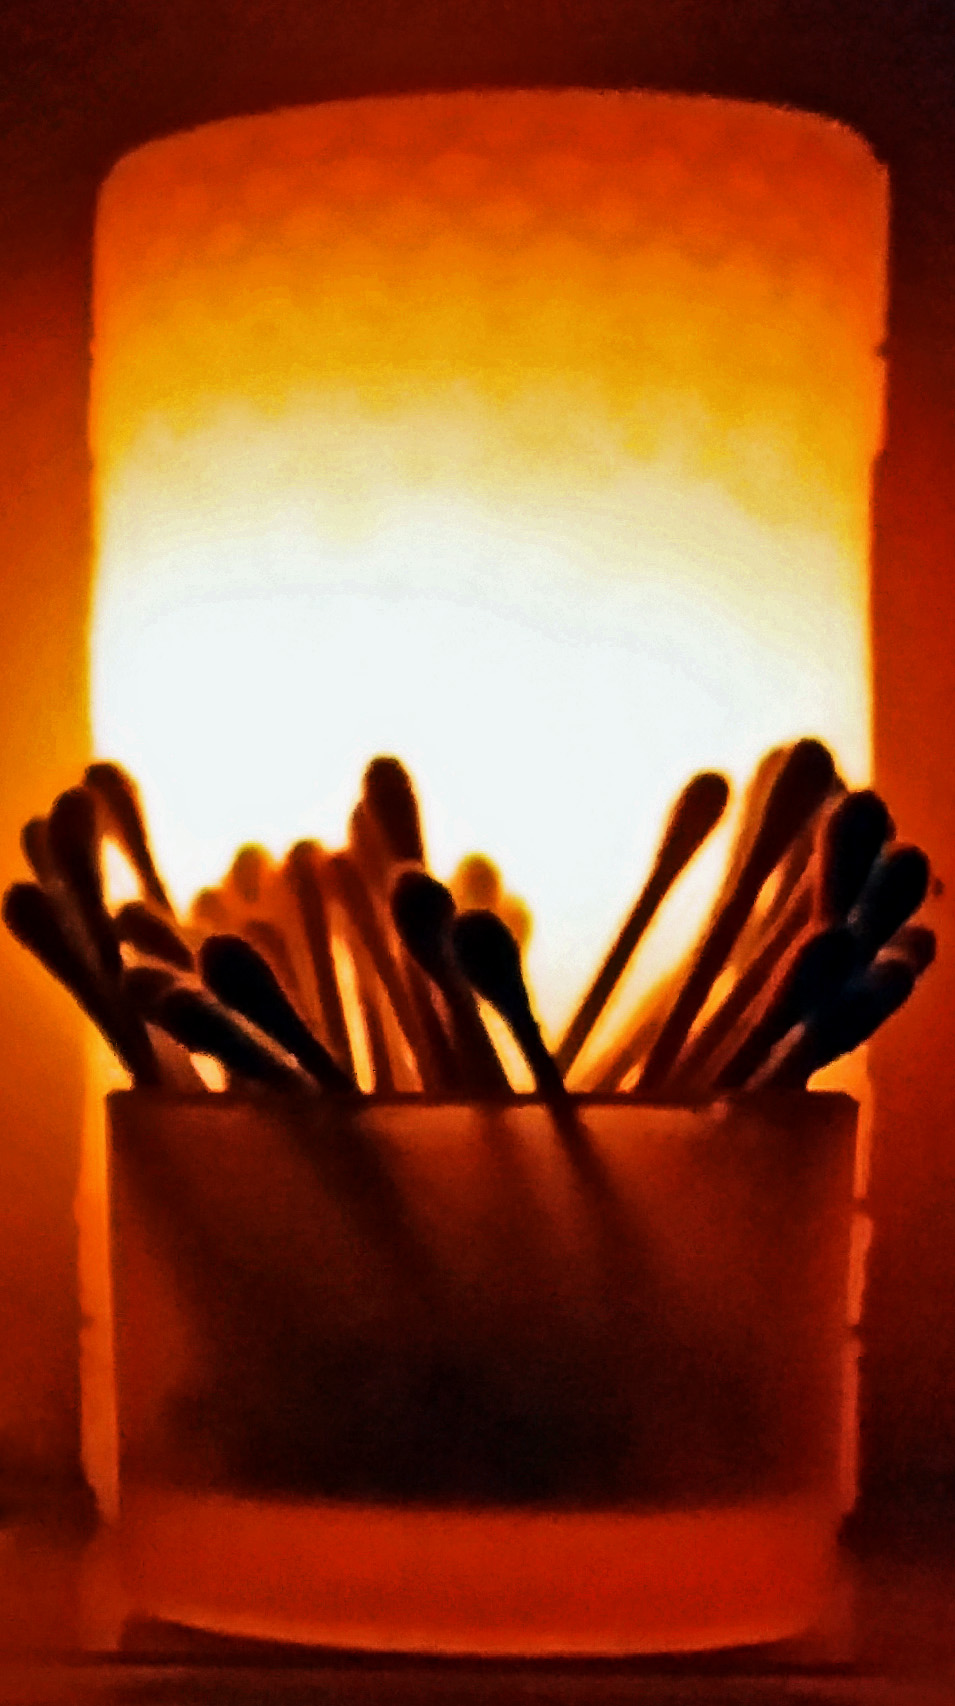 Swabs Under Candle Light